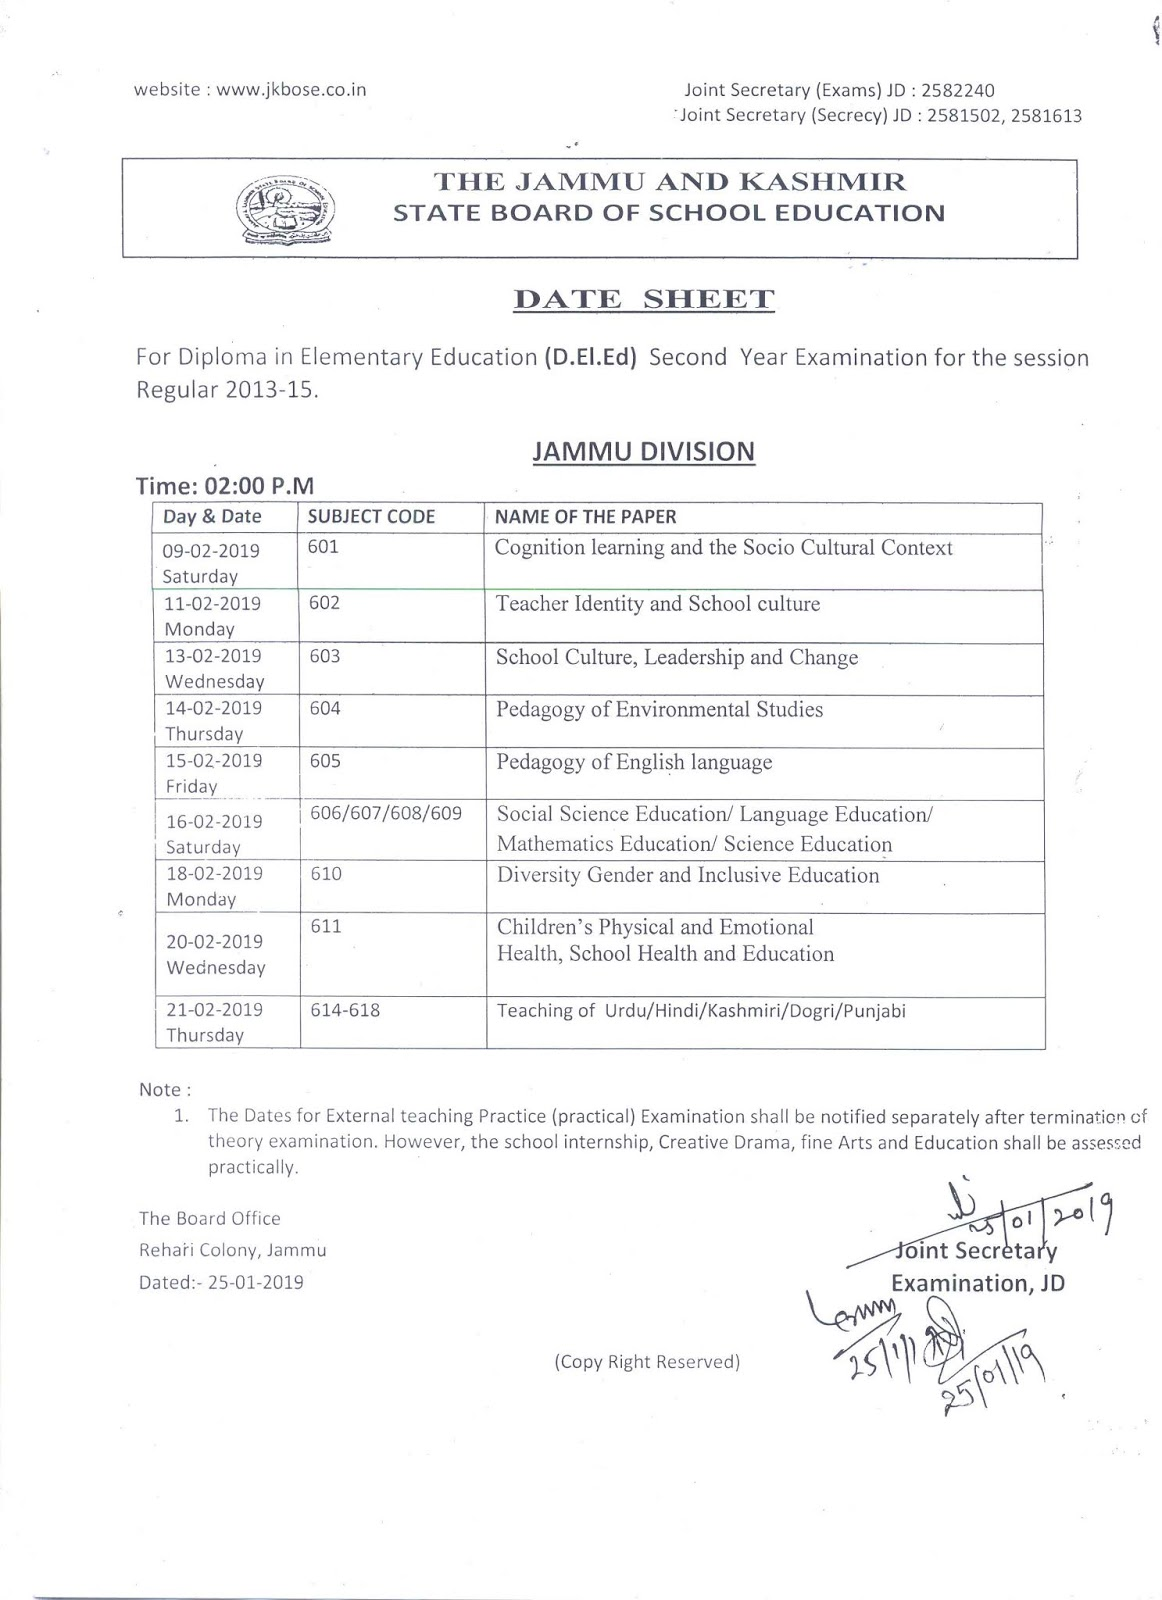 JKBOSE Date Sheet for D.El.Ed Second Year Exam for Session Regular 2013-15